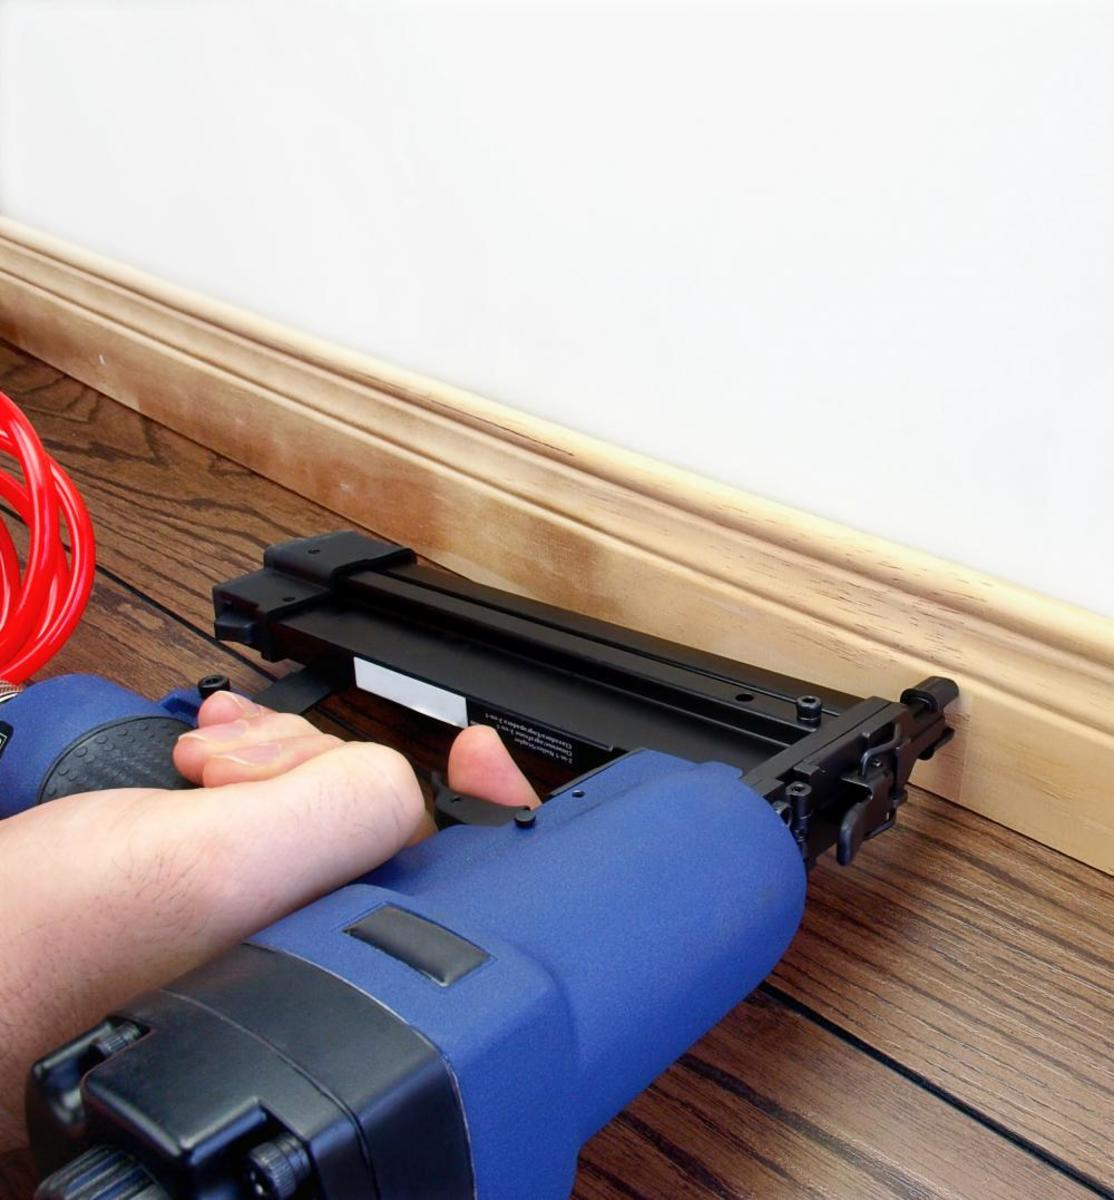 Which Type Of Nail Gun Or Nailer Do You